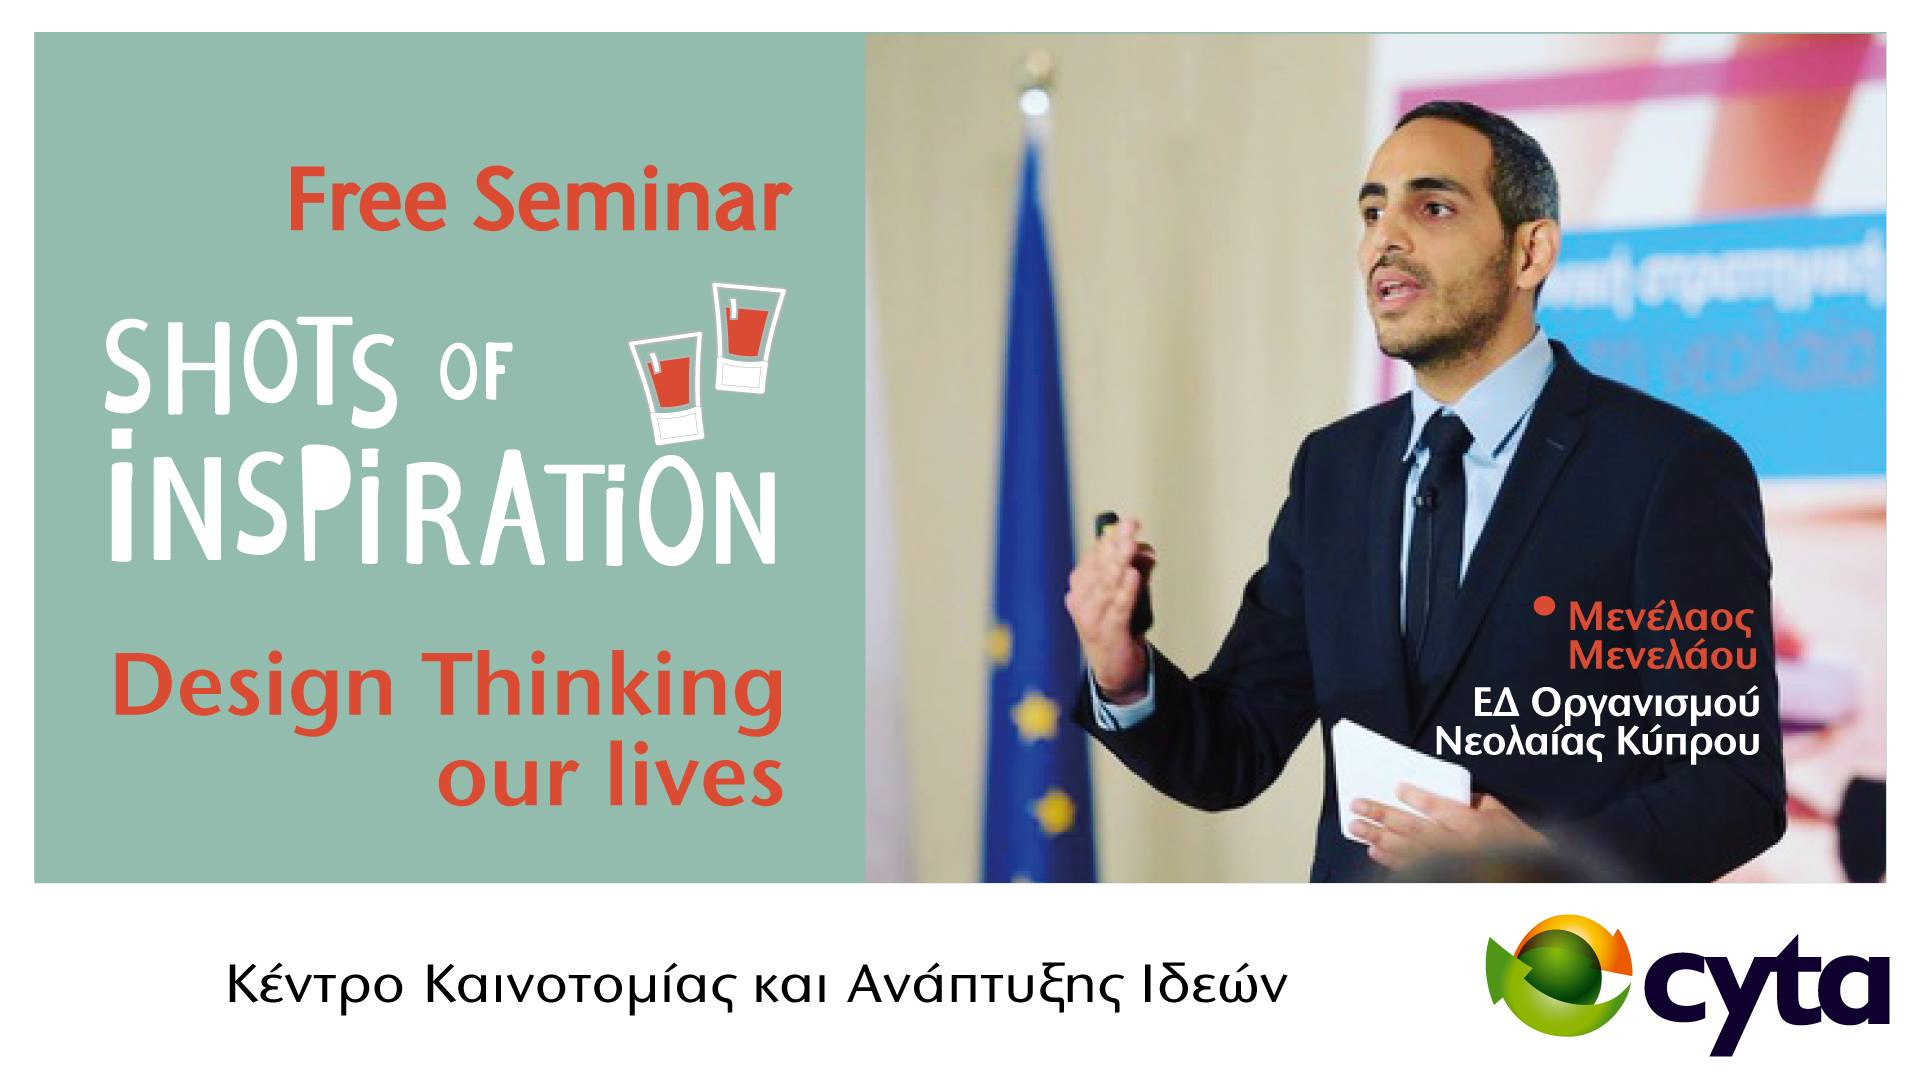 Shots Of Inspiration - Design Thinking our lives cyta cyprus cyprusinno